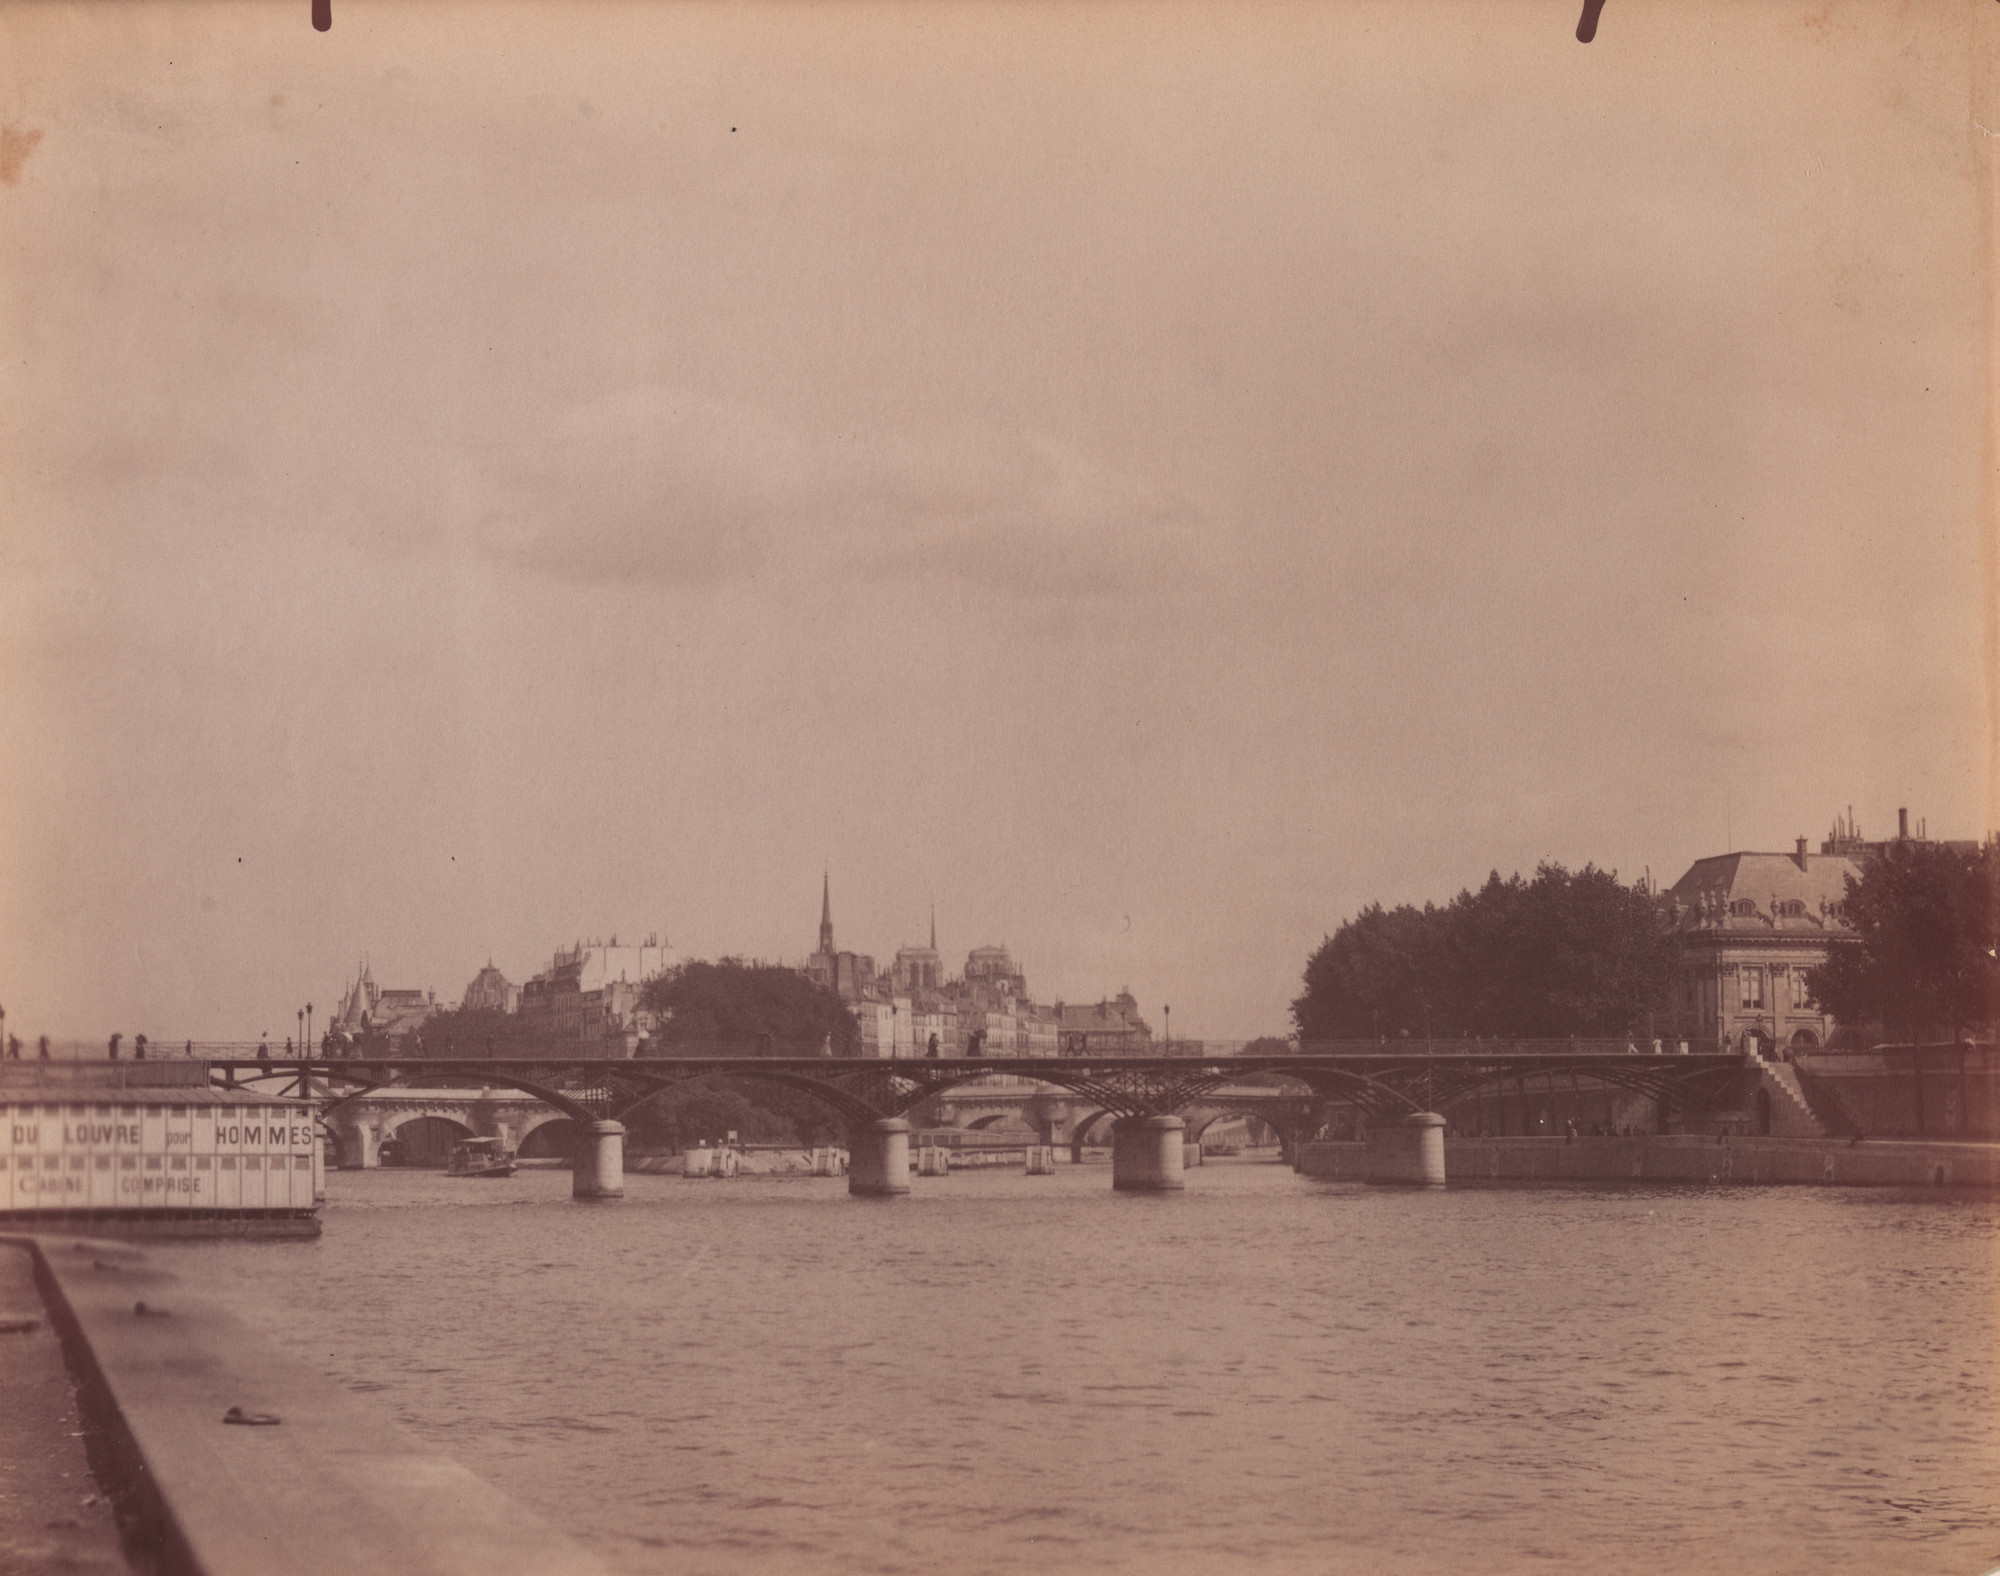 Eugène Atget. Untitled [View of the Seine and the Ile de la Cité]. 1899